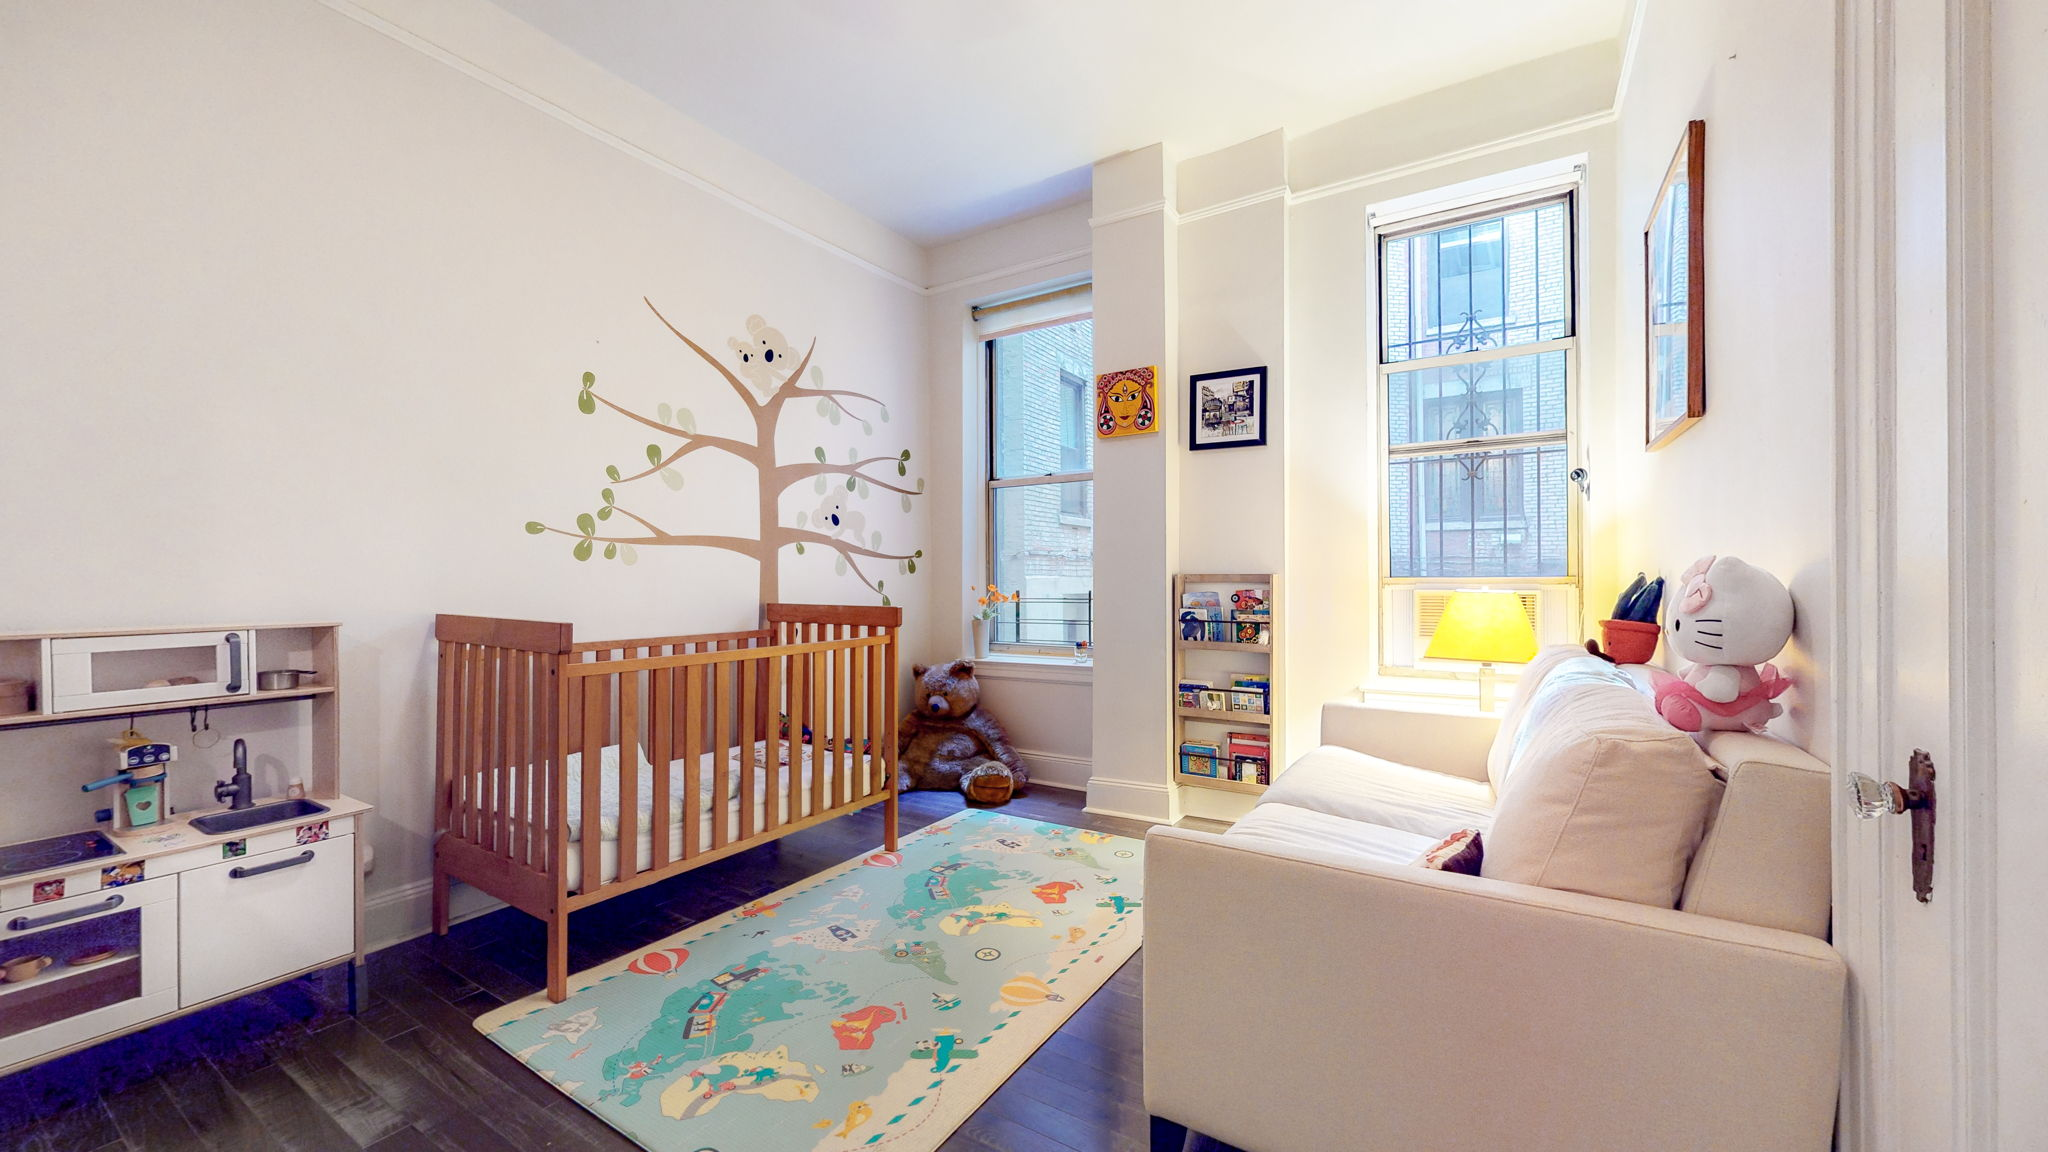 West 100th Street 318, New York, New York, New York, United States 10025, 2 Bedrooms Bedrooms, ,1.5 BathroomsBathrooms,Condo,FOR SALE,318 West 100th,318,1,1158